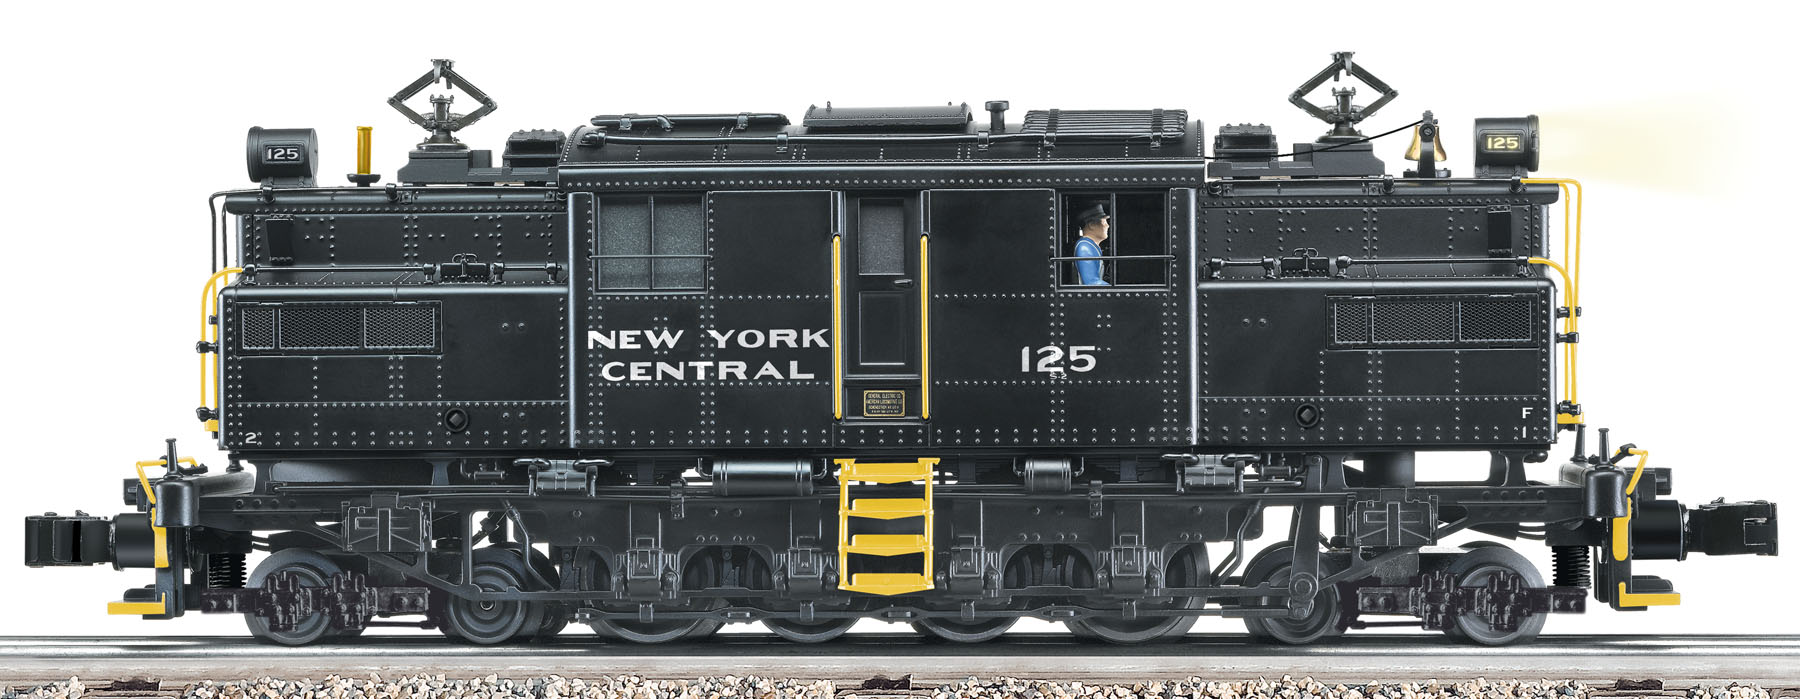 small resolution of new york central tmcc s 2 electric 125 lionel 1033 transformer wiring diagram lionel tmcc wiring diagram